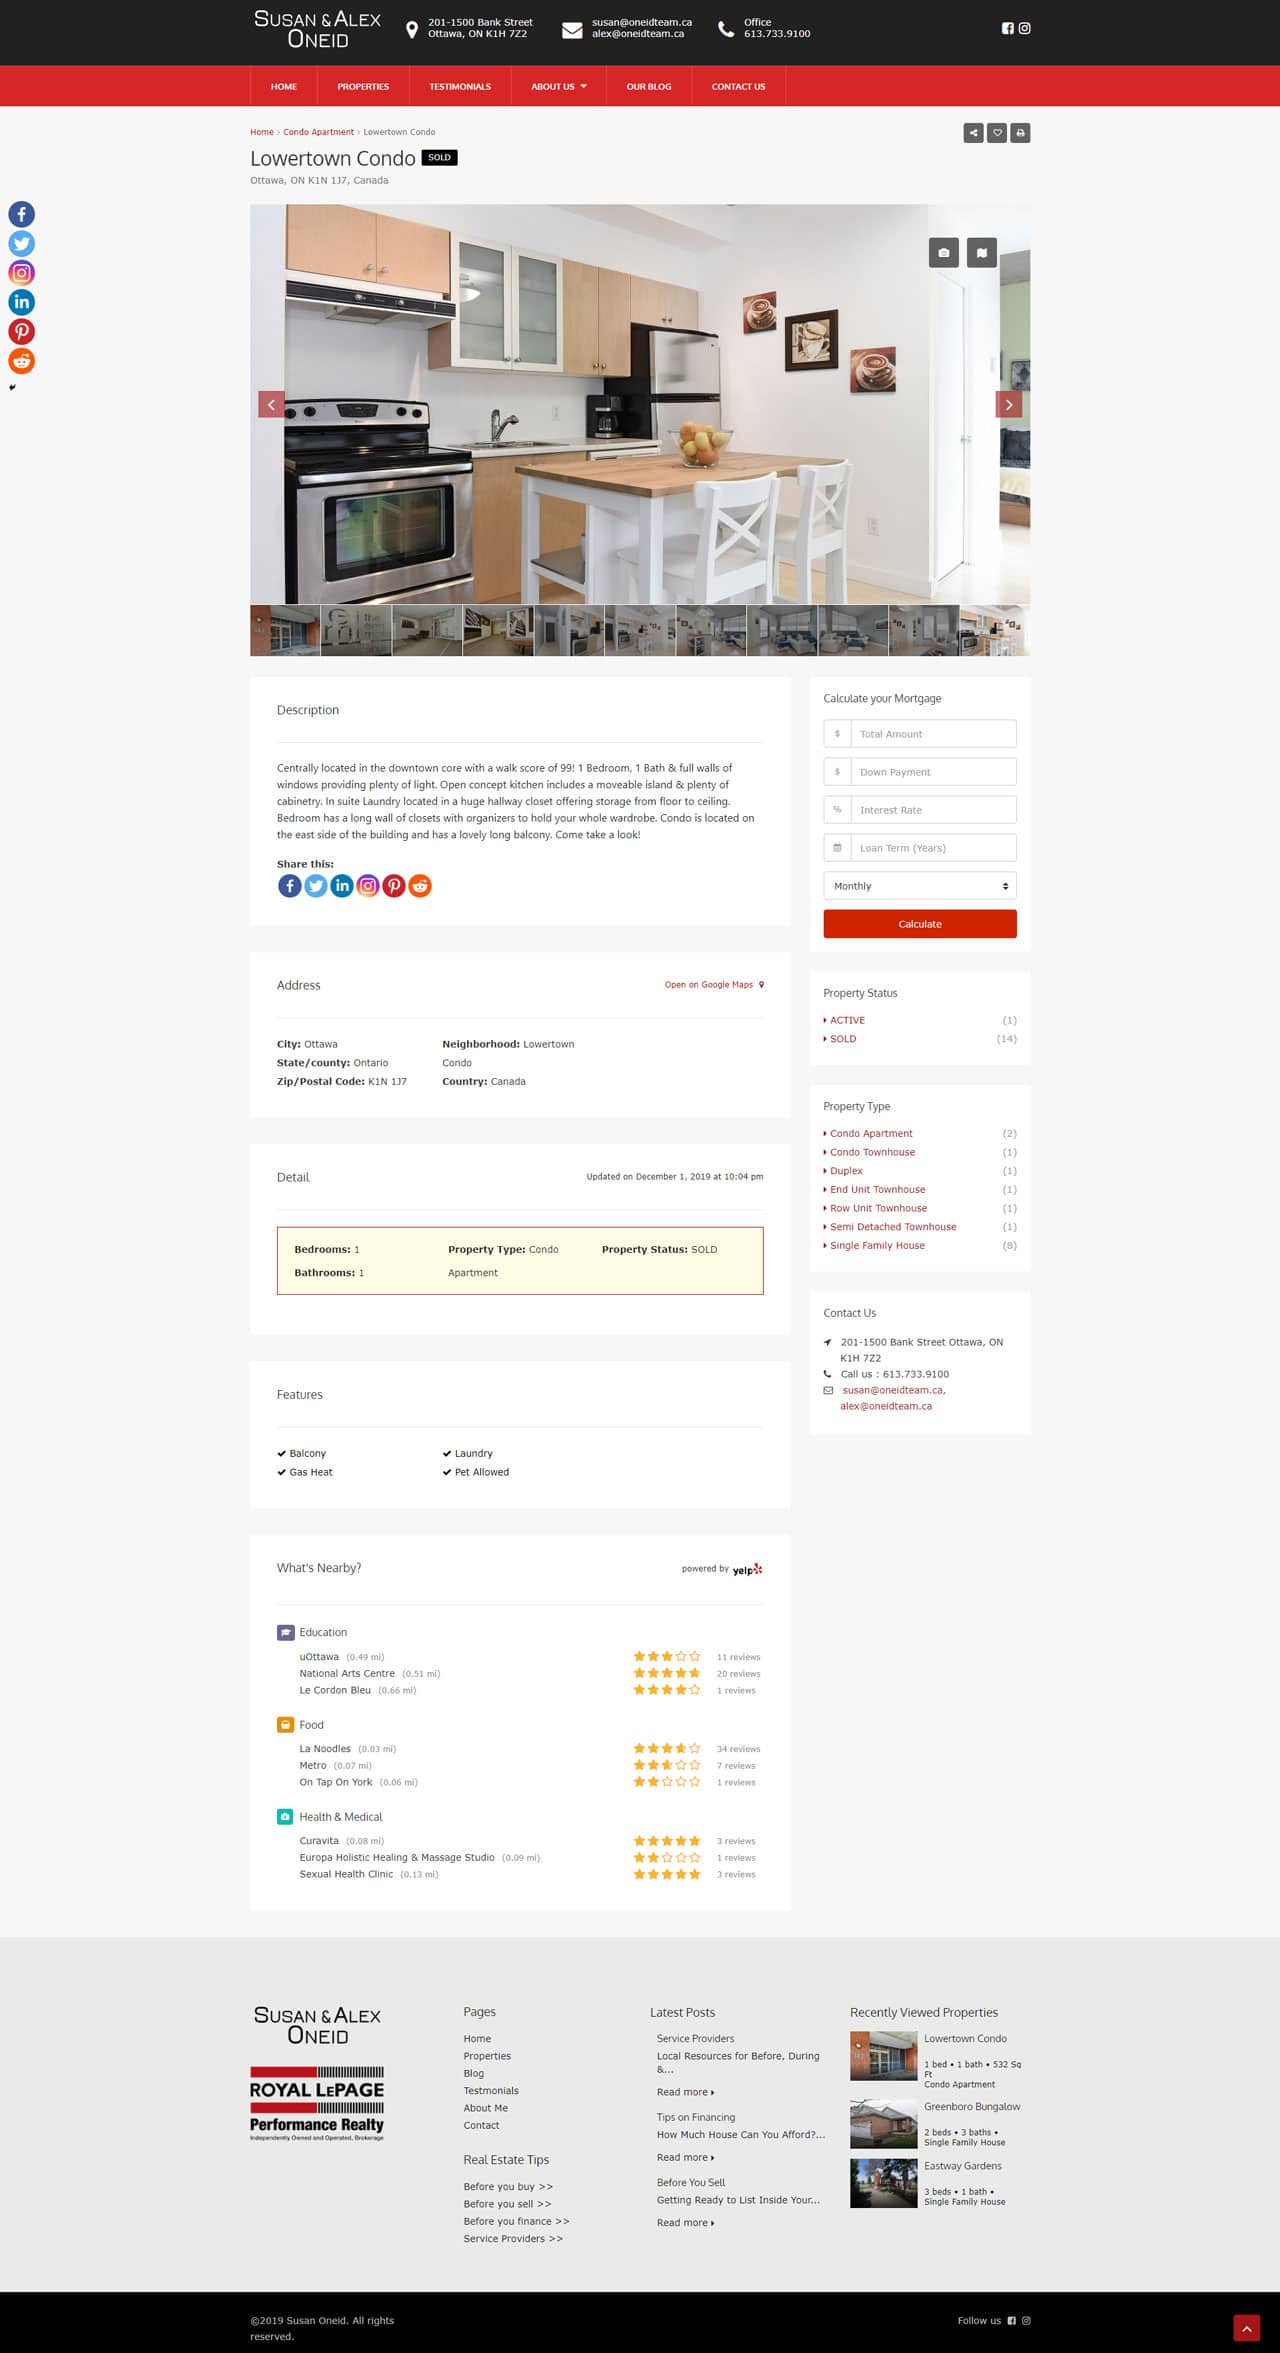 oneidteam.ca's property detailed page demo